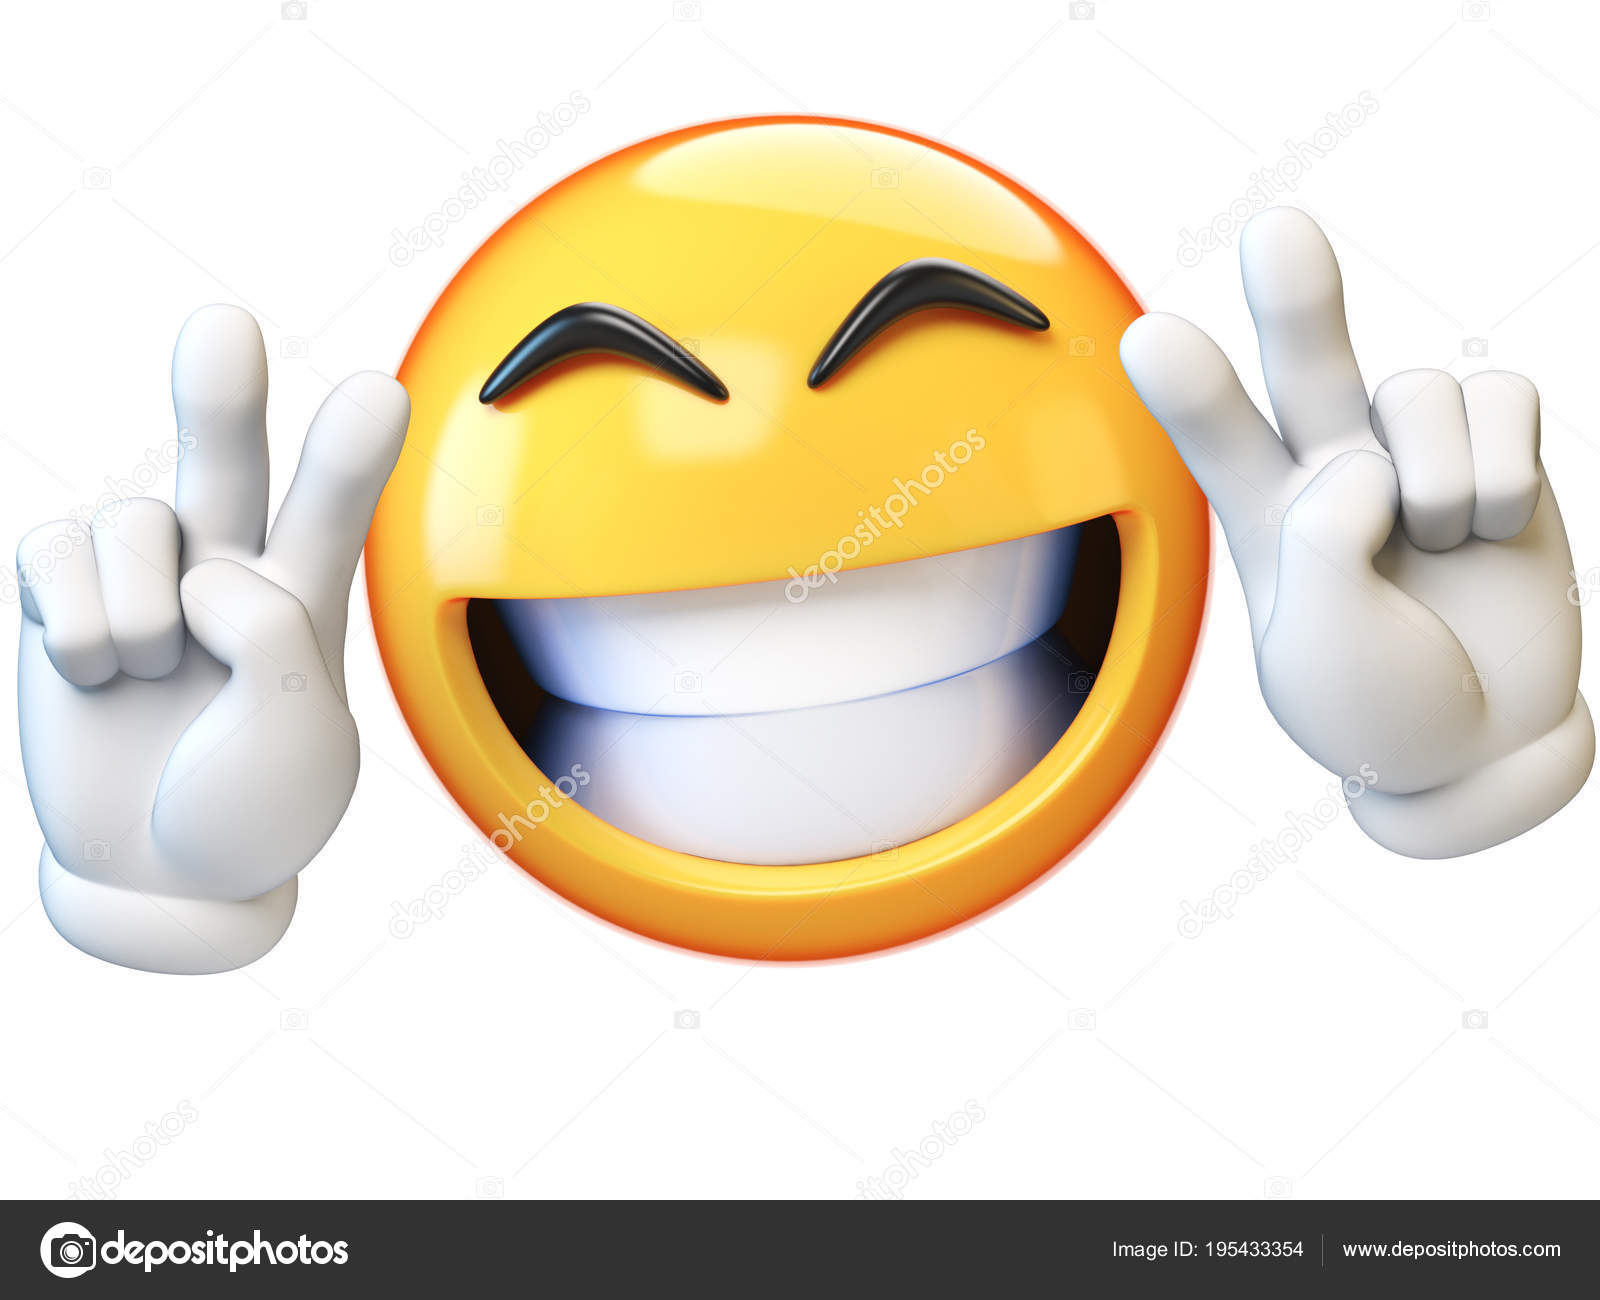 Peace Emoji Isolated White Background Victory Emoticon Rendering Stock Photo C Koya979 195433354